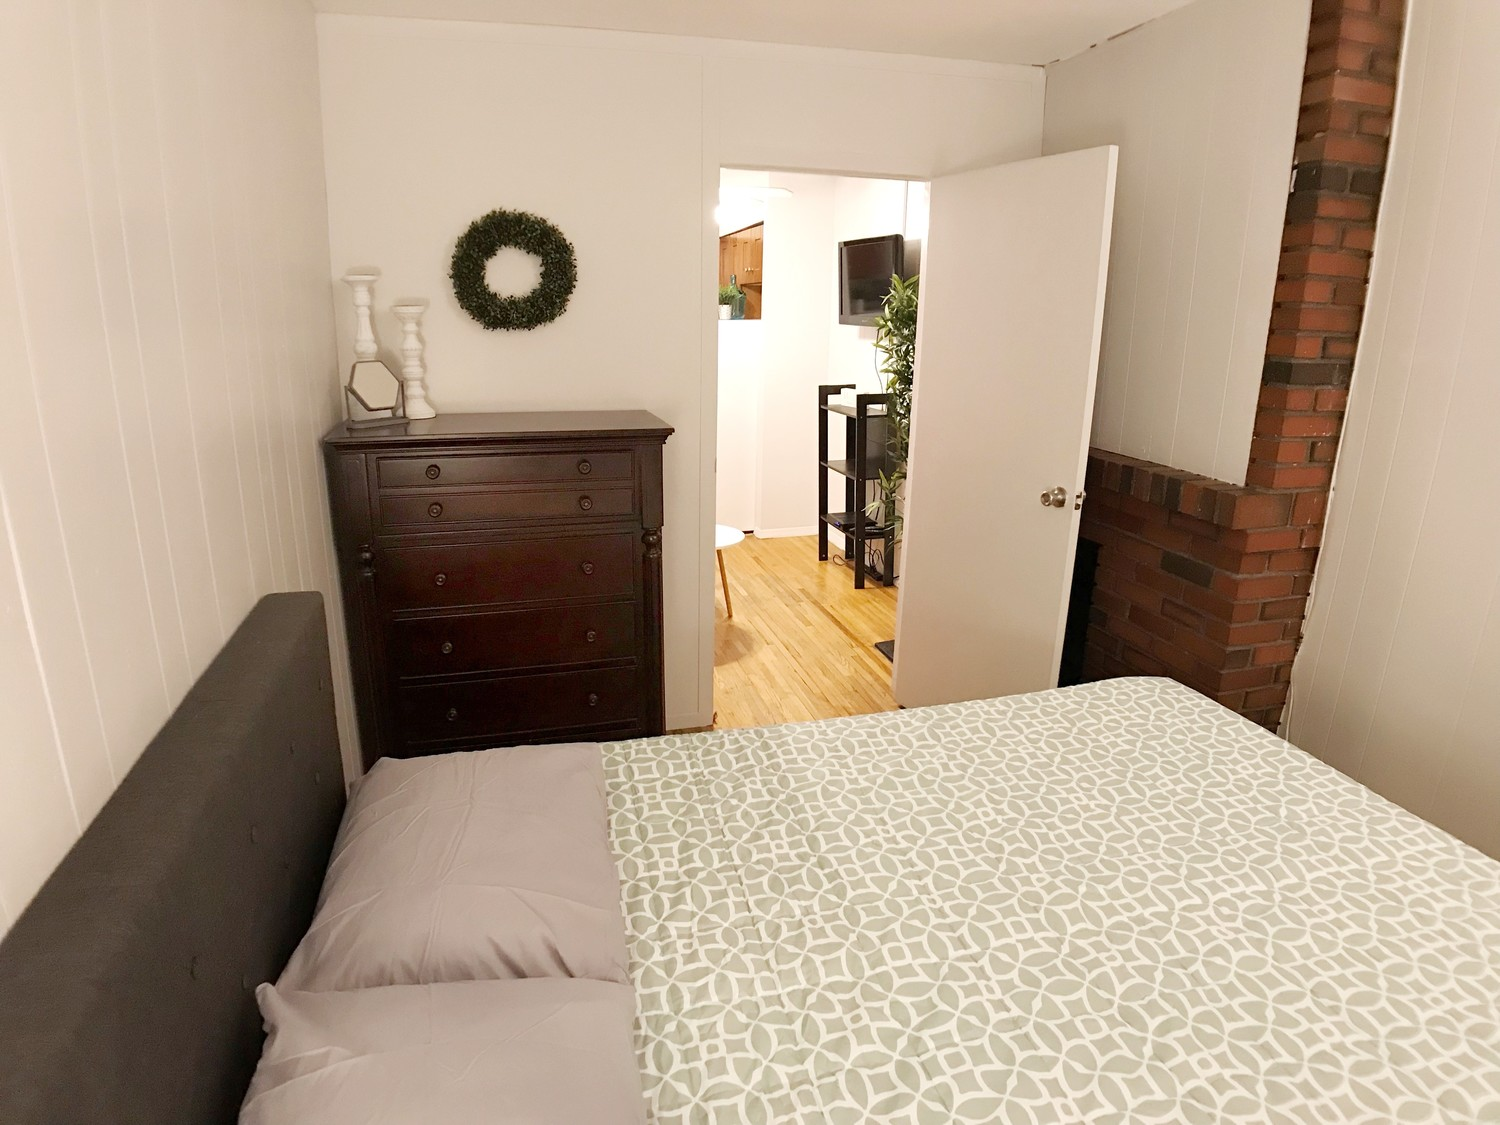 (Perfect Sublet #1006) Furnished 1BR +sofa bed in Elevator Building